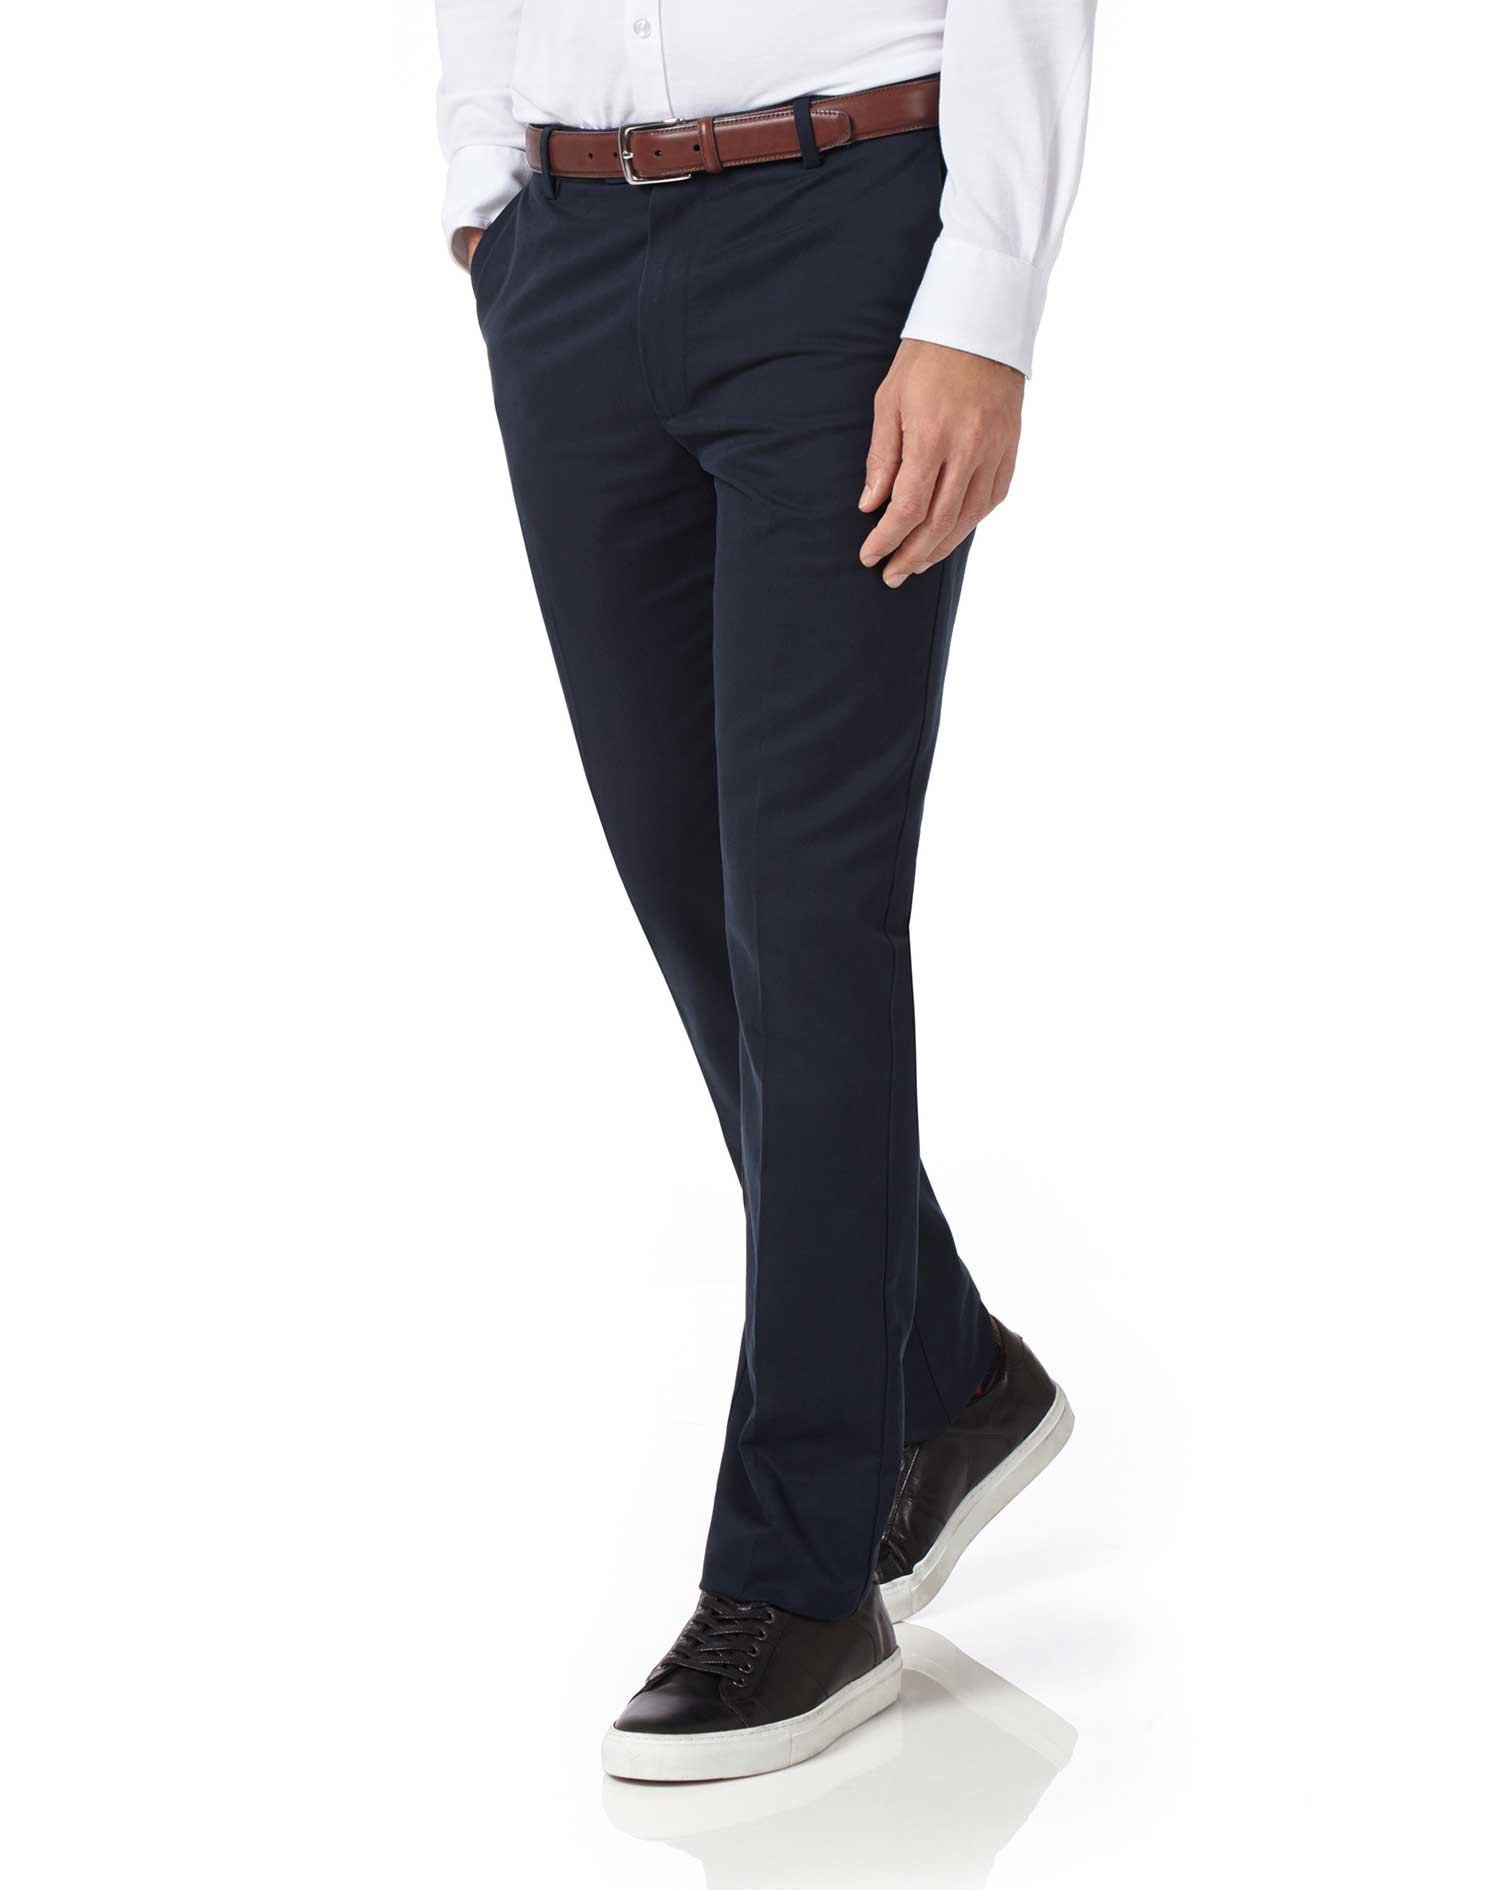 Navy Extra Slim Fit Flat Front Non-Iron Cotton Chino Trousers Size W36 L34 by Charles Tyrwhitt